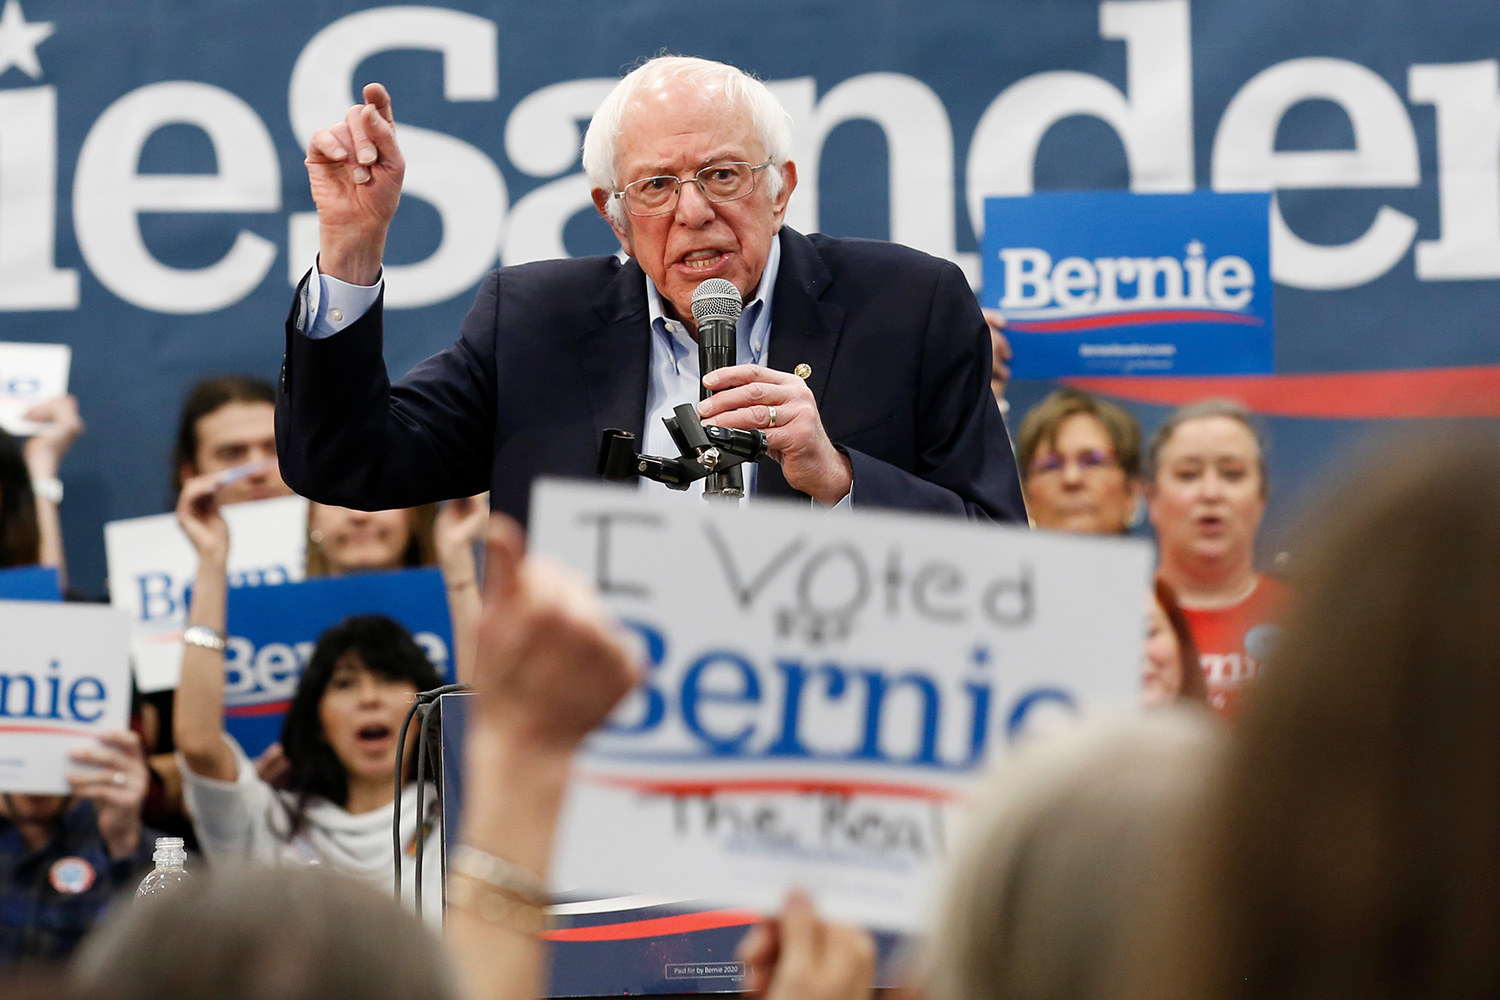 Democratic presidential candidate Sen. Bernie Sanders I-Vt., speaks at a campaign event in Carson City, Nev Election 2020 Bernie Sanders, Carson City, USA - 16 Feb 2020